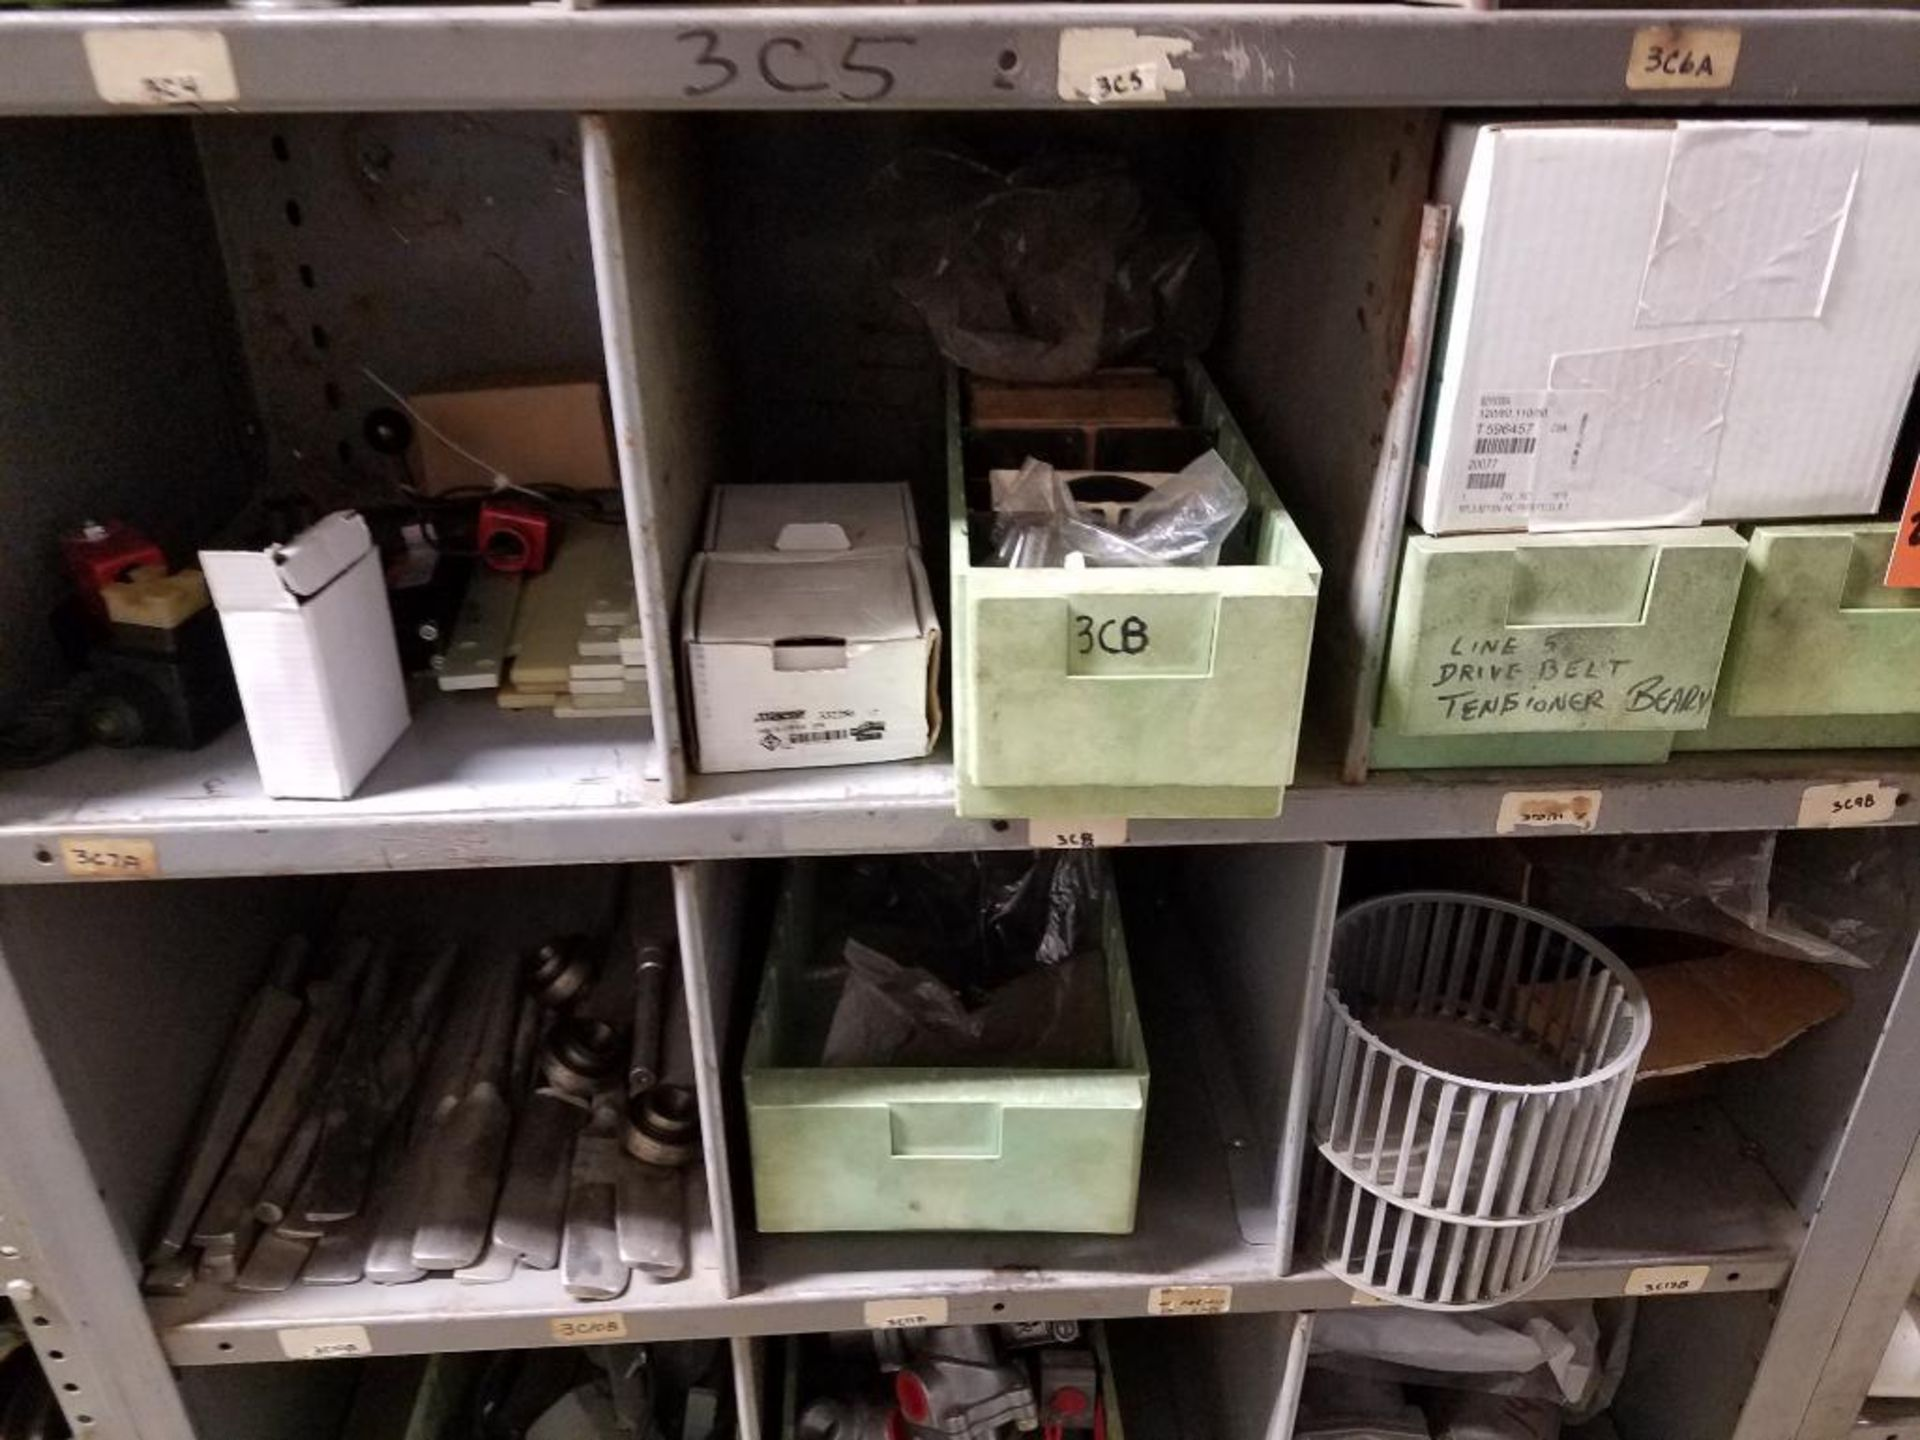 various replacement parts, conveyor belts, electrical components, gears and gauges - Image 16 of 21